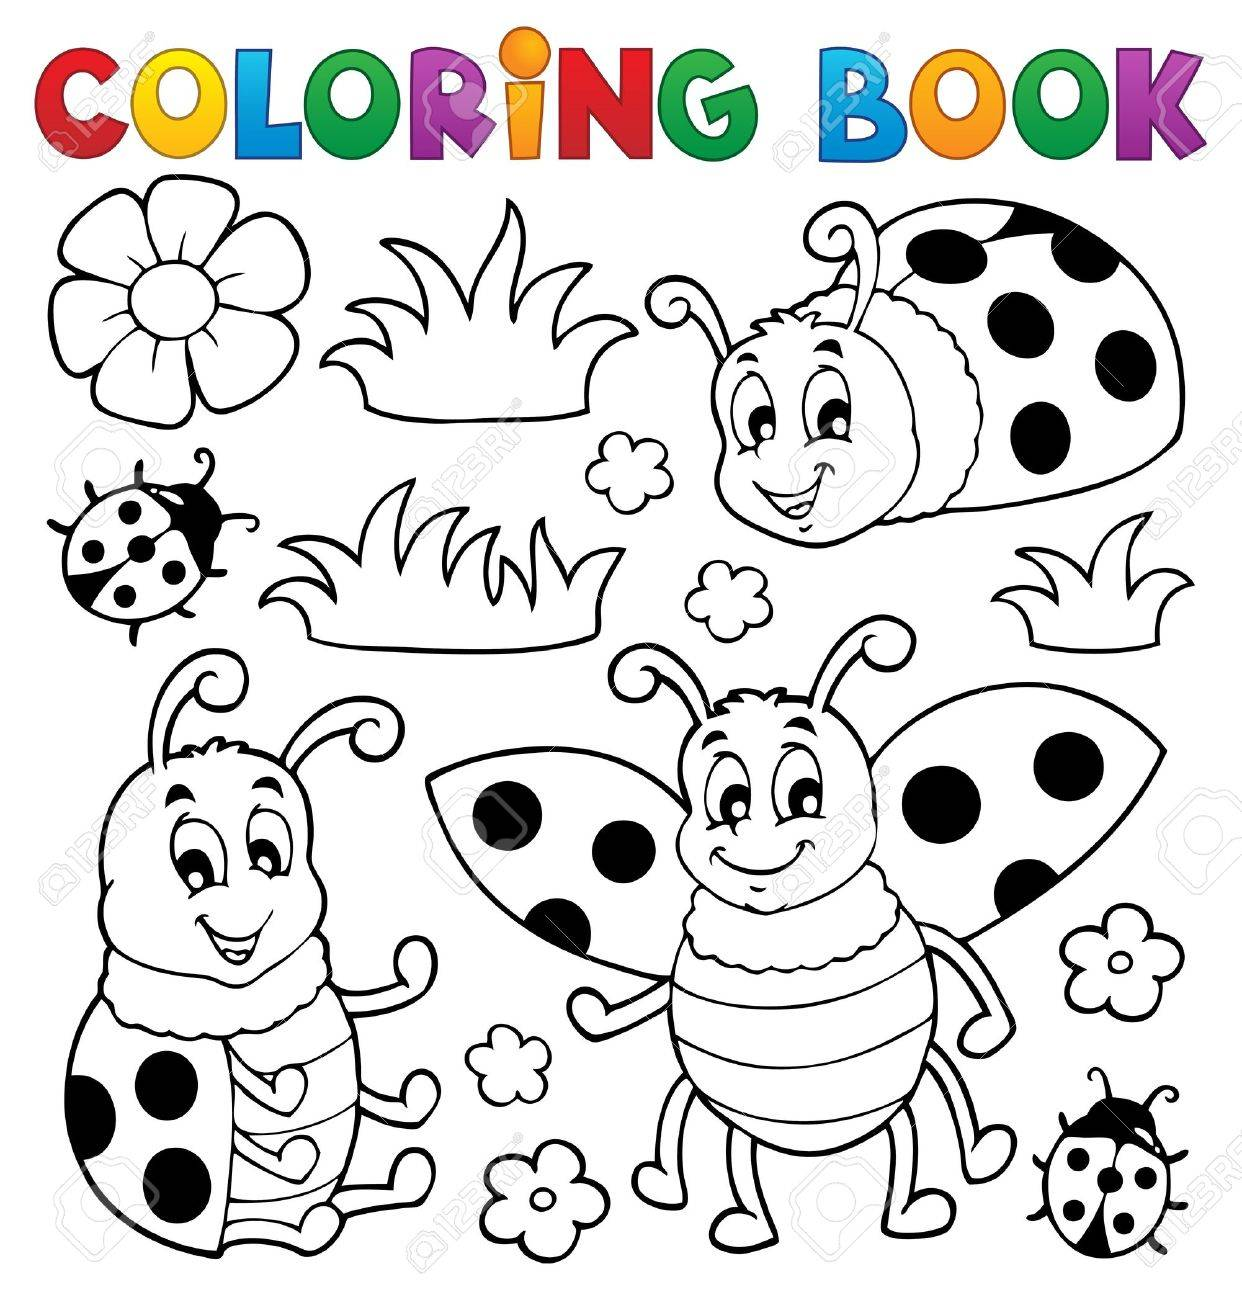 Coloring book ladybug theme 1 - vector illustration Stock Vector - 17368300